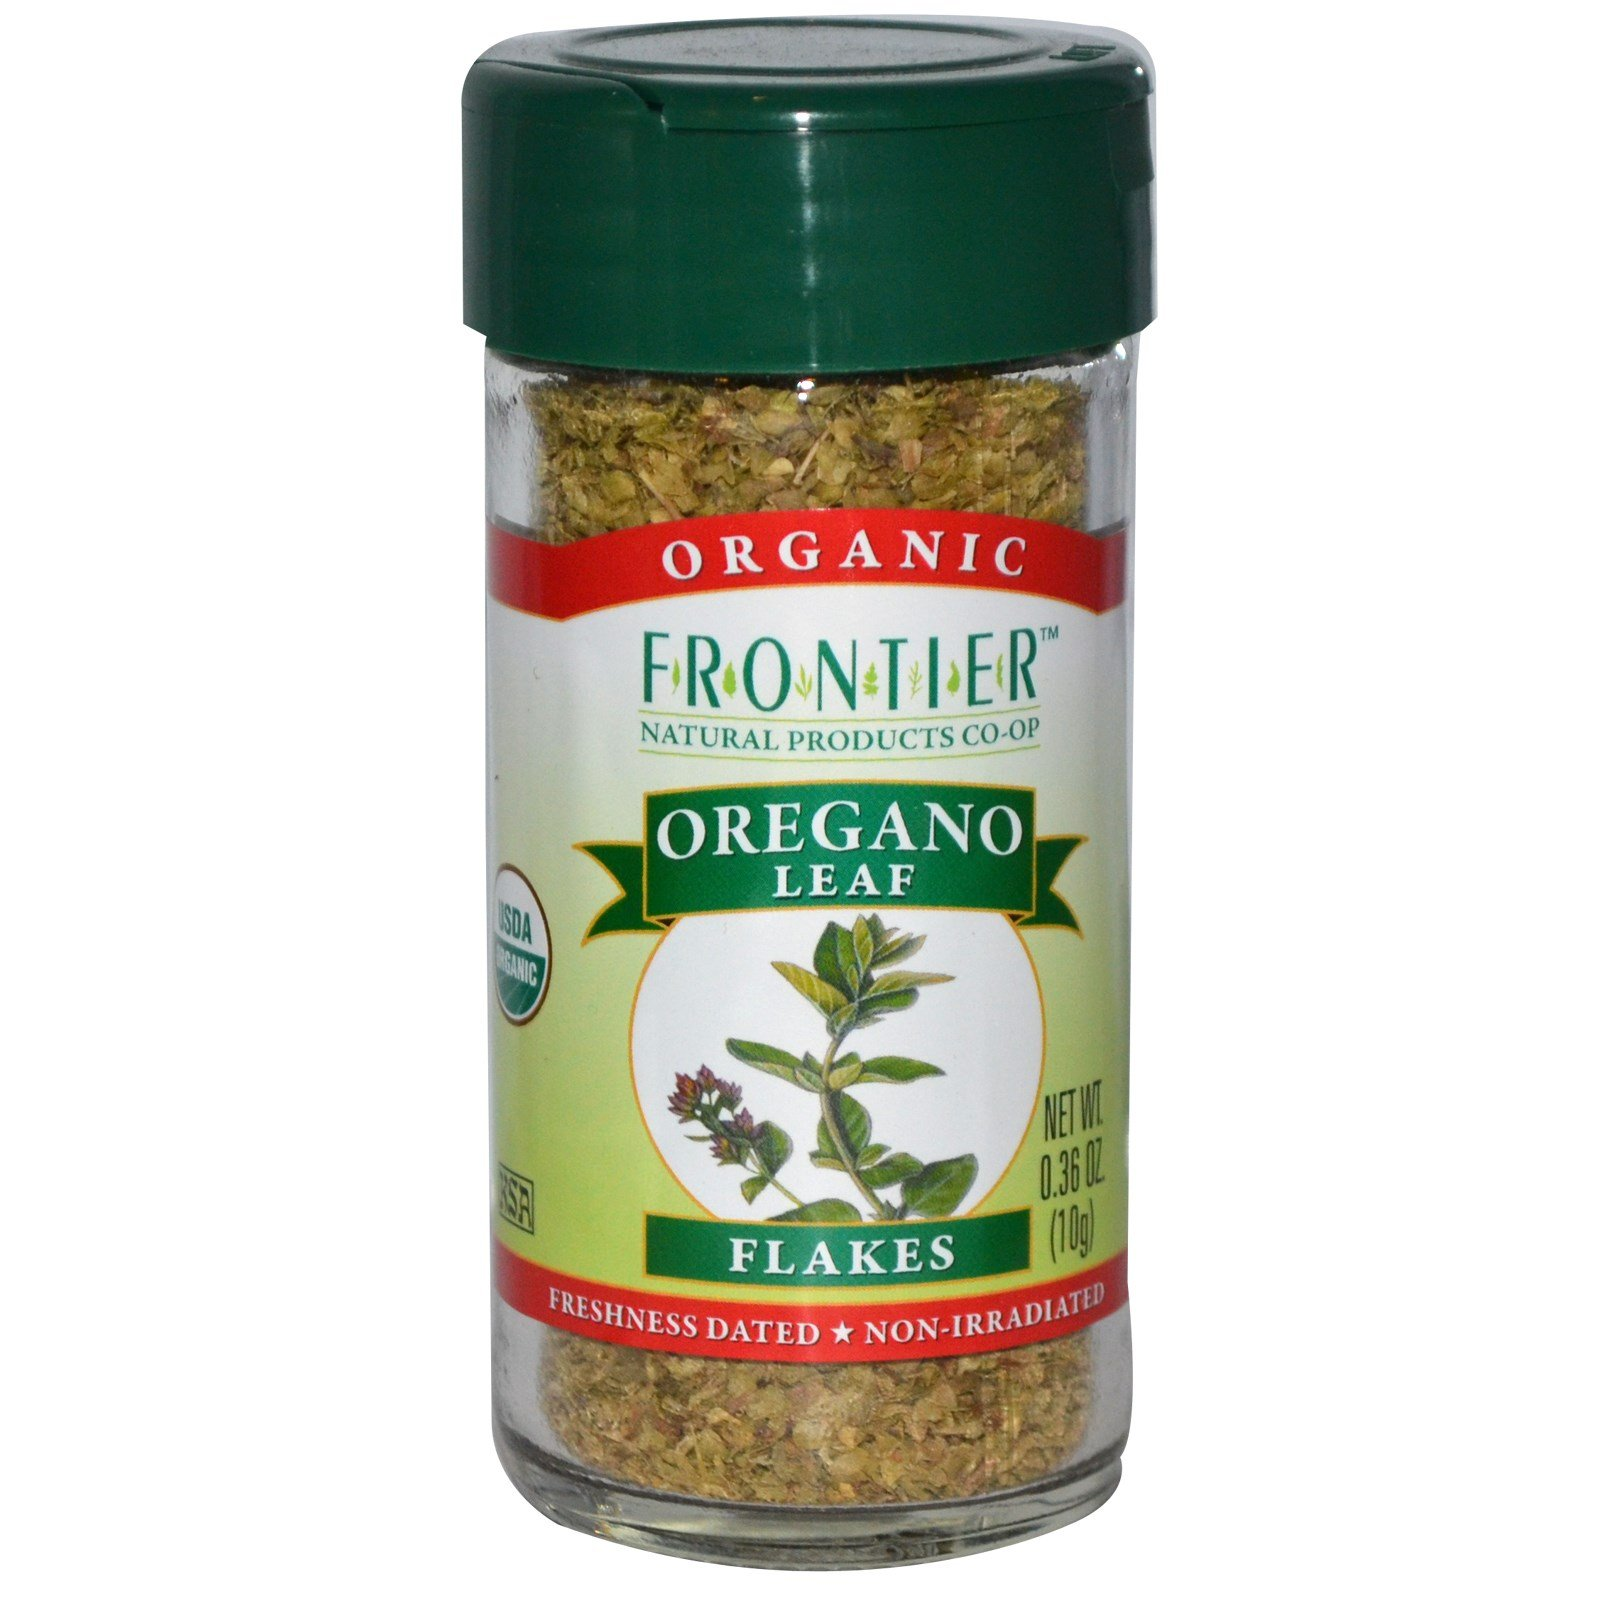 Frontier Natural Products, Organic Oregano Leaf Flakes, 0.36 oz (10 g) - 2pcs